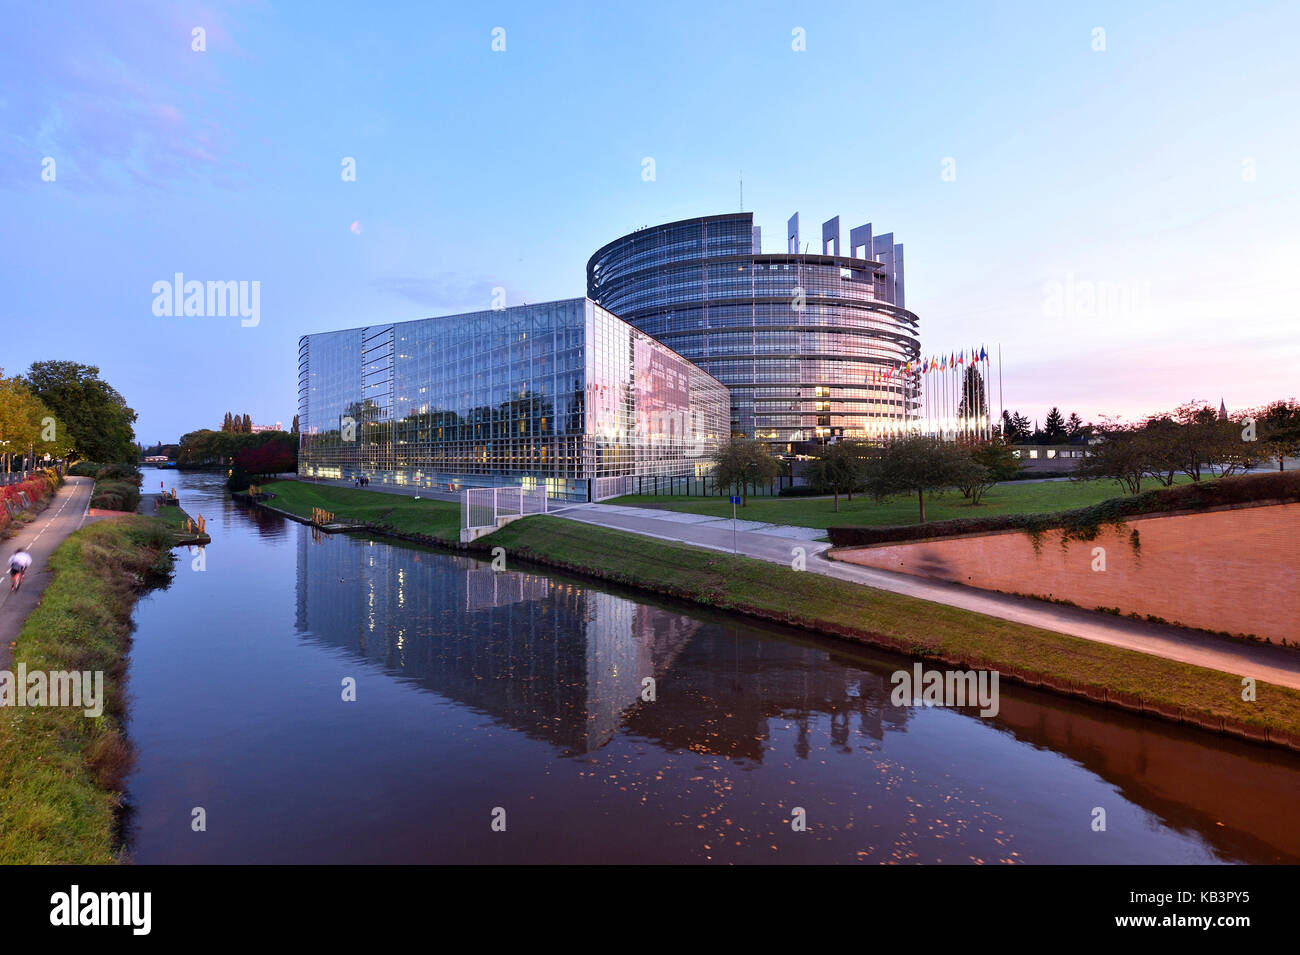 European parlement by the architecture firm architecture for Architecture firms in europe